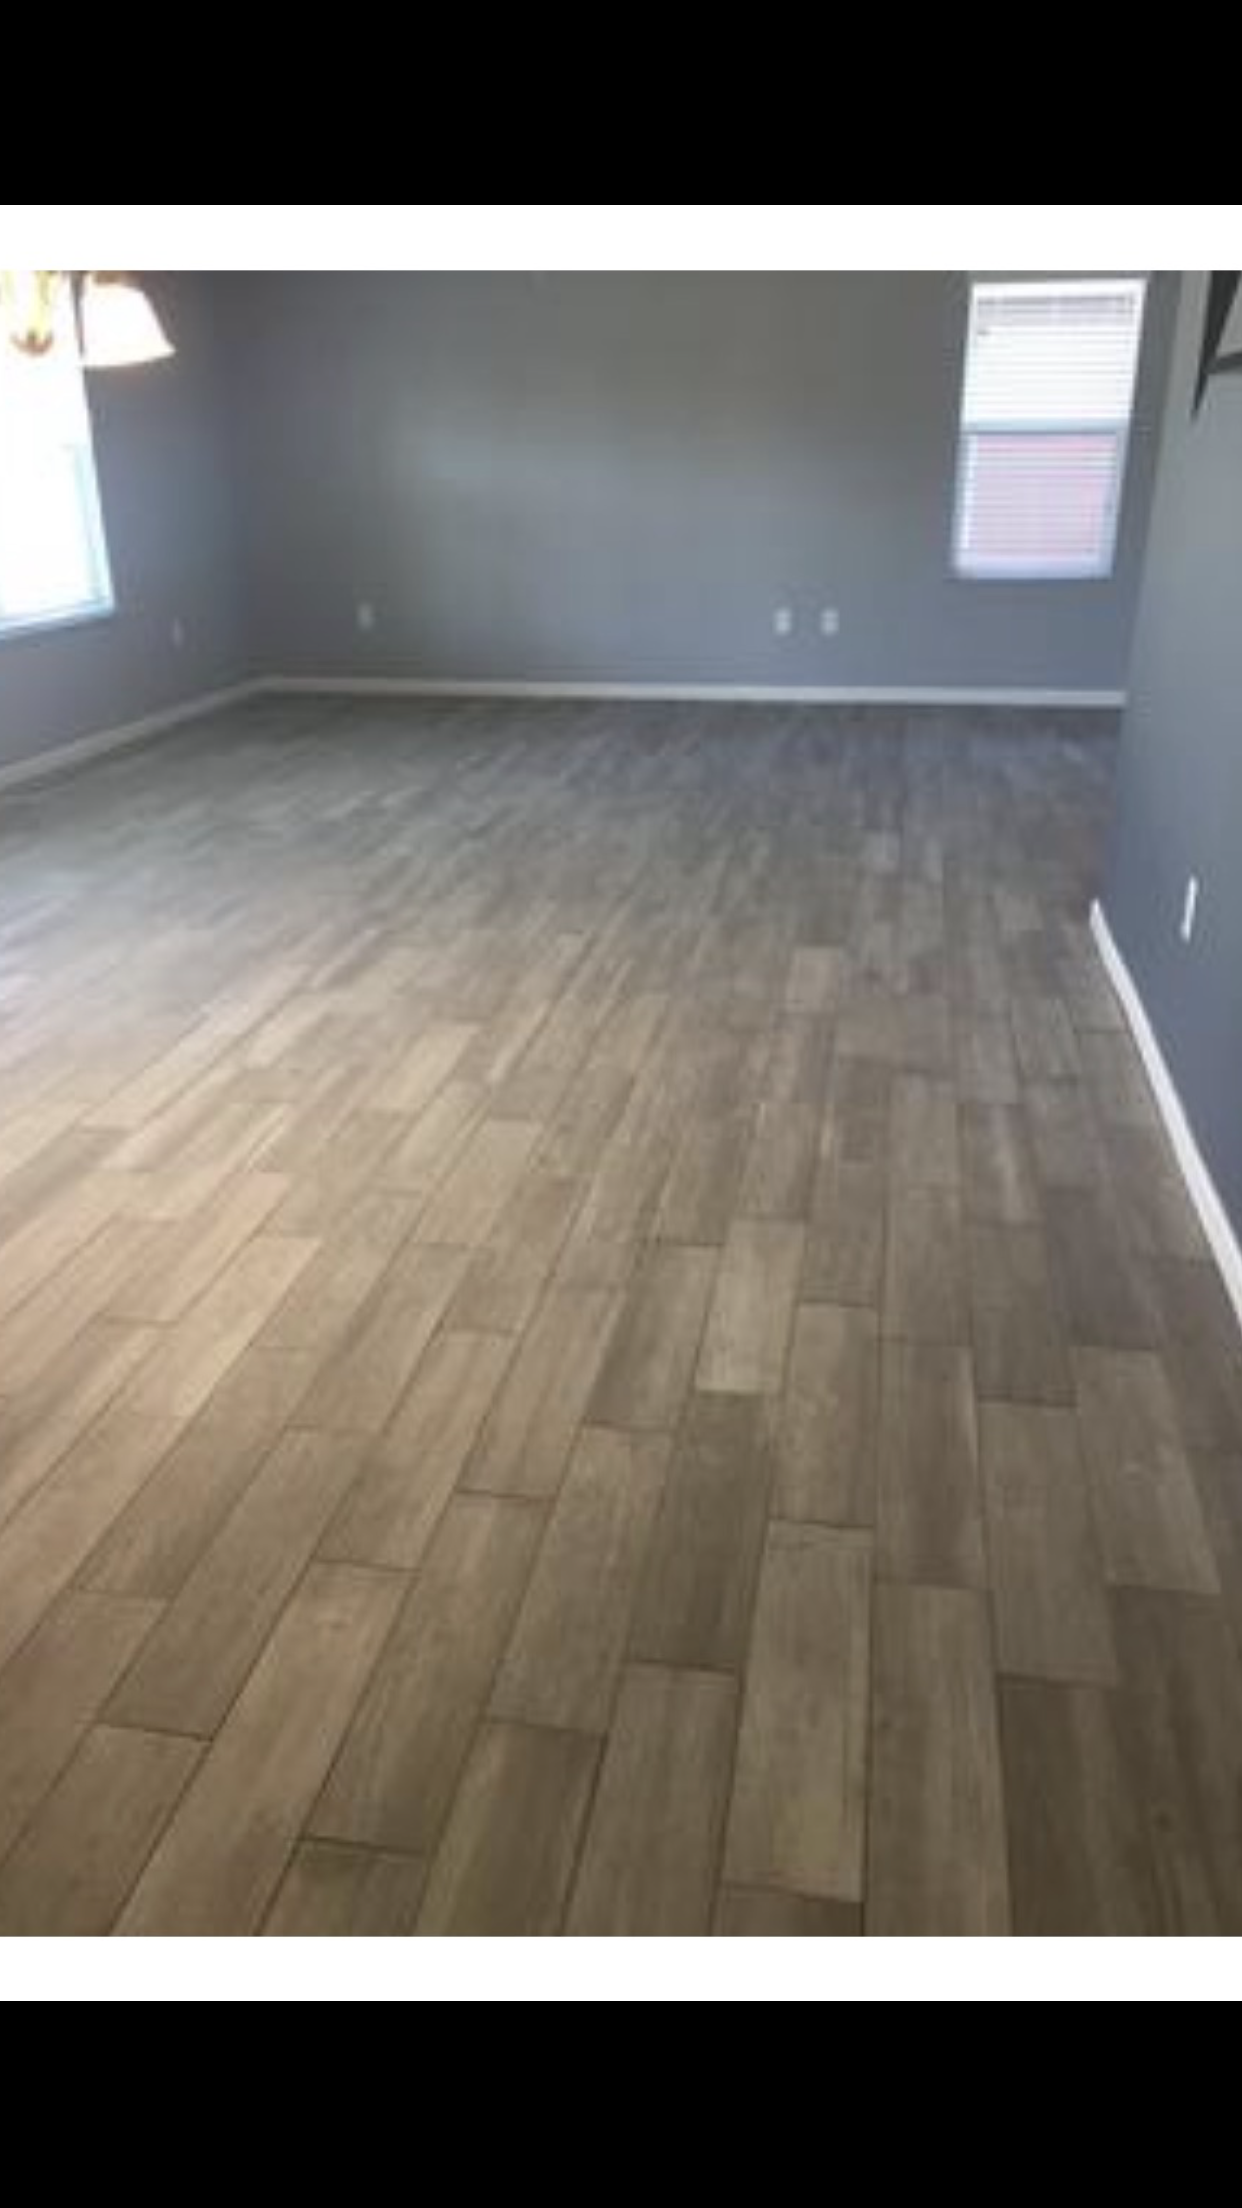 del conca woods vintage gray wood look porcelain floor and wall